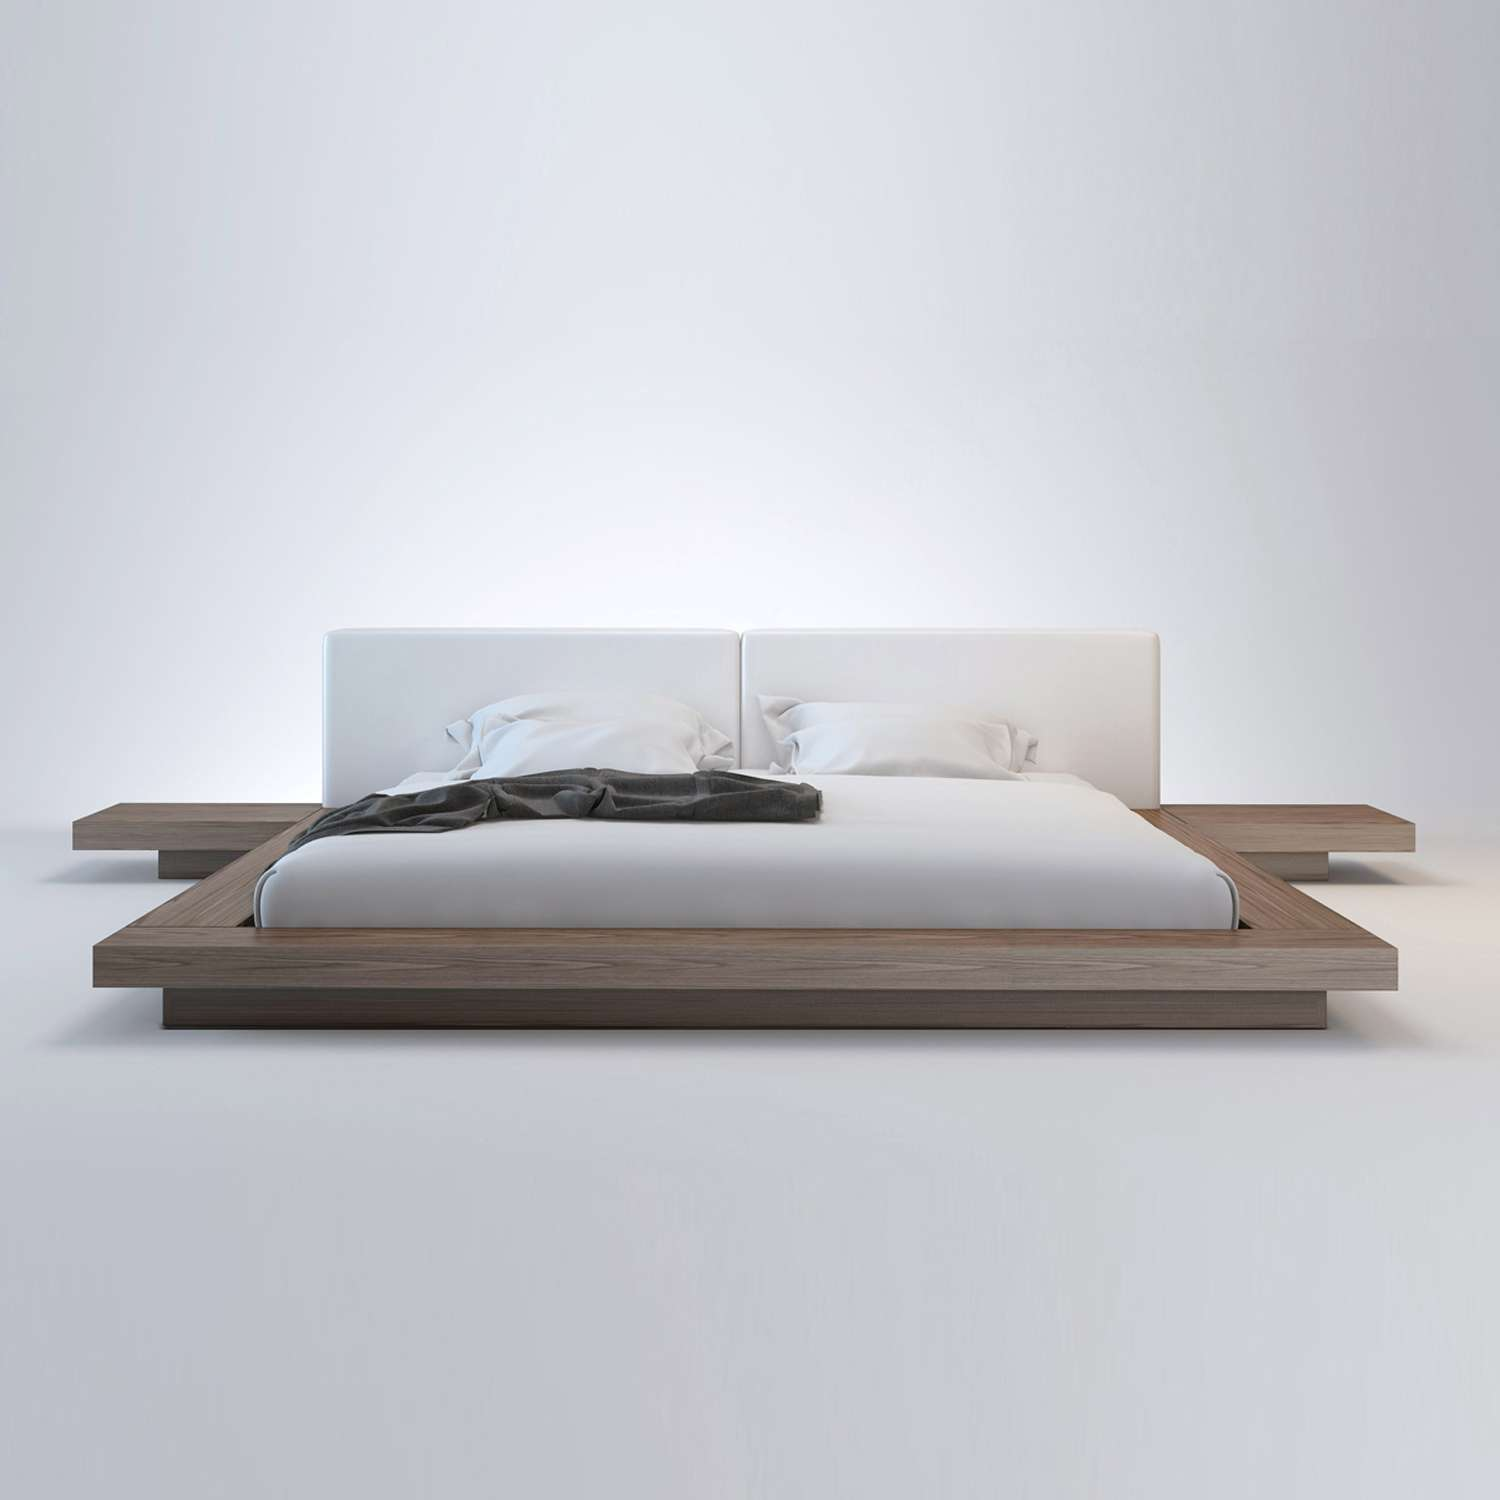 Modloft Sullivan Dining Table | Modloft | Modloft Ludlow Platform Bed